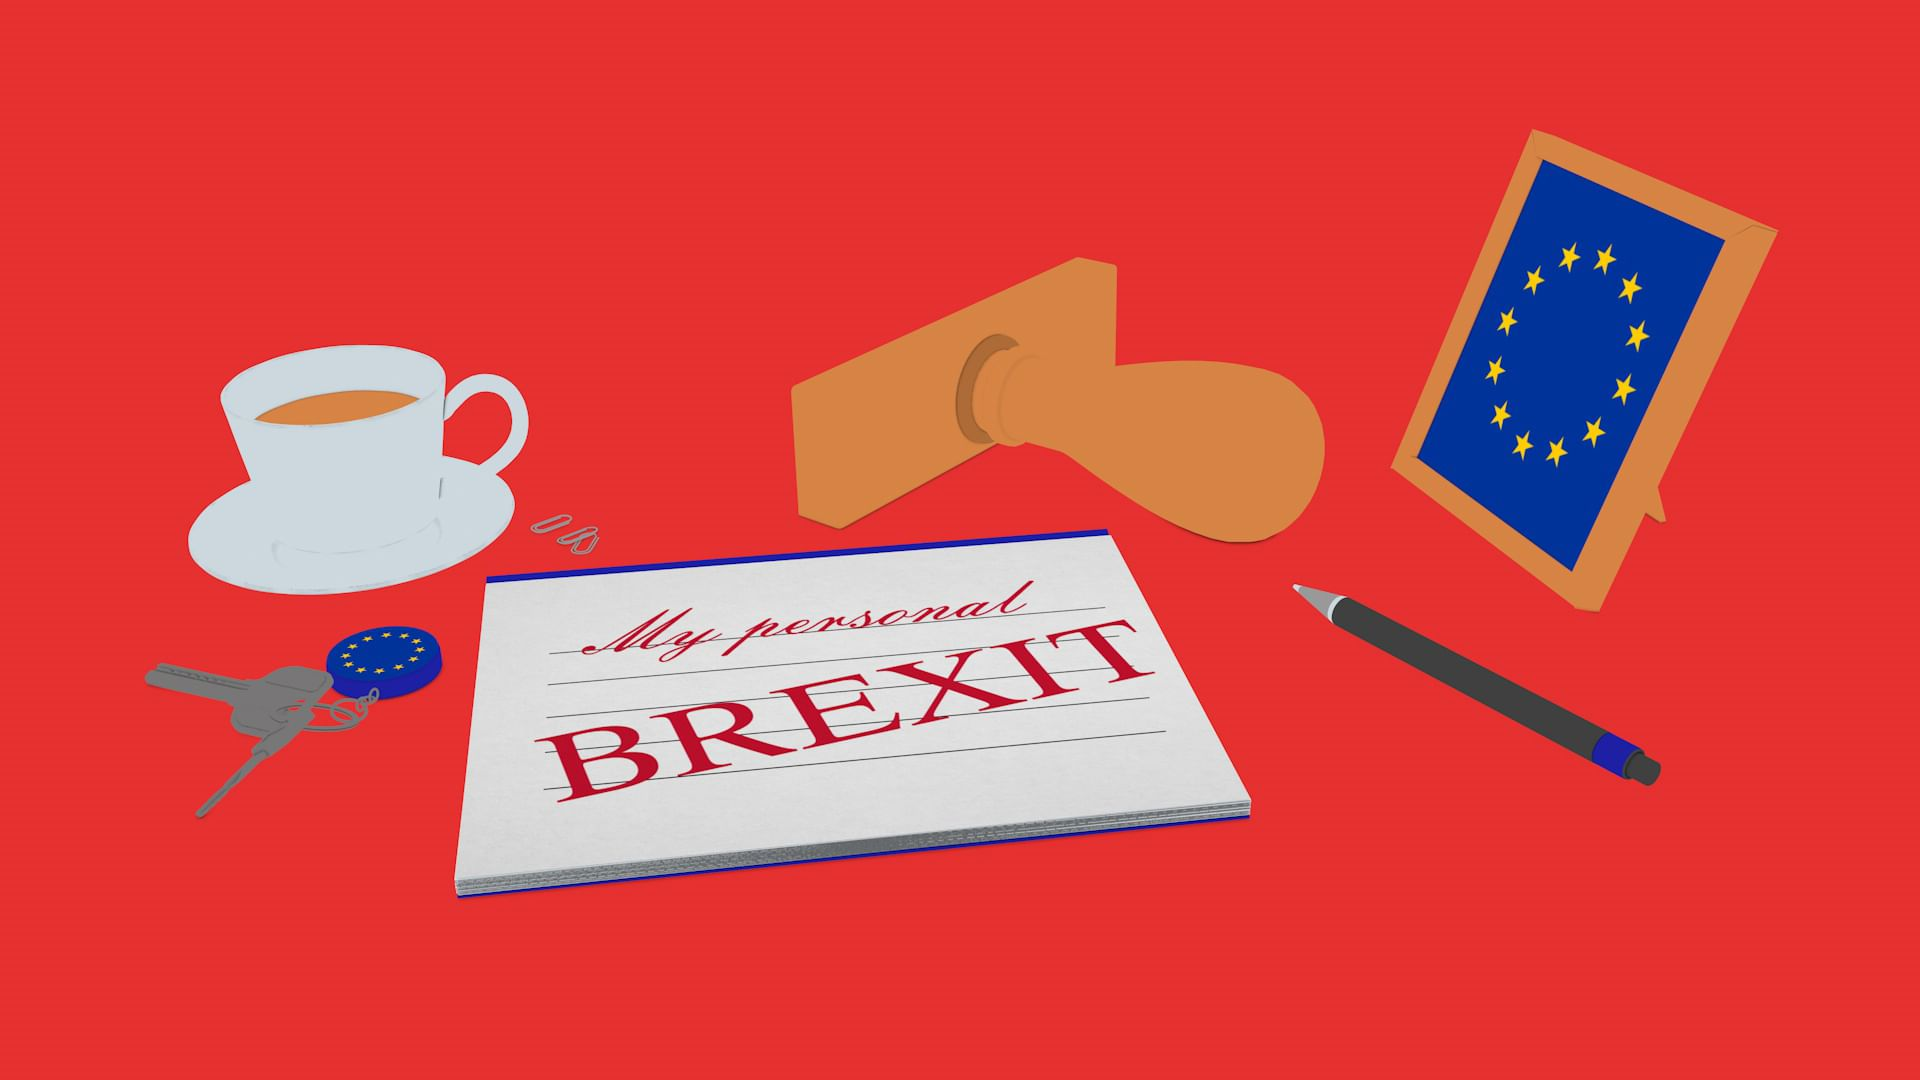 My Personal Brexit